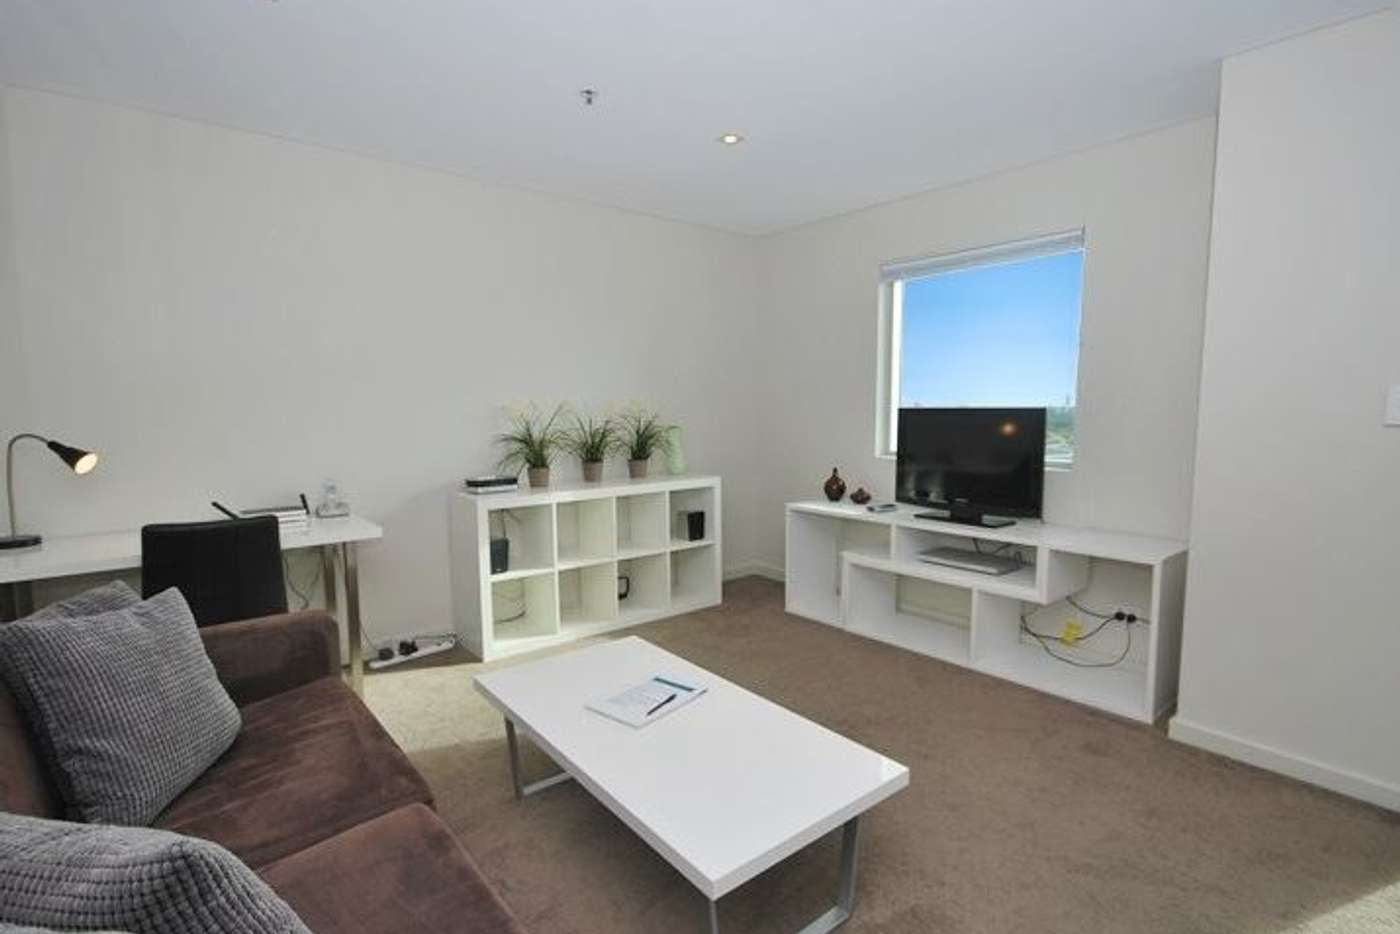 Fifth view of Homely apartment listing, 1217/96 North Terrace, Adelaide SA 5000